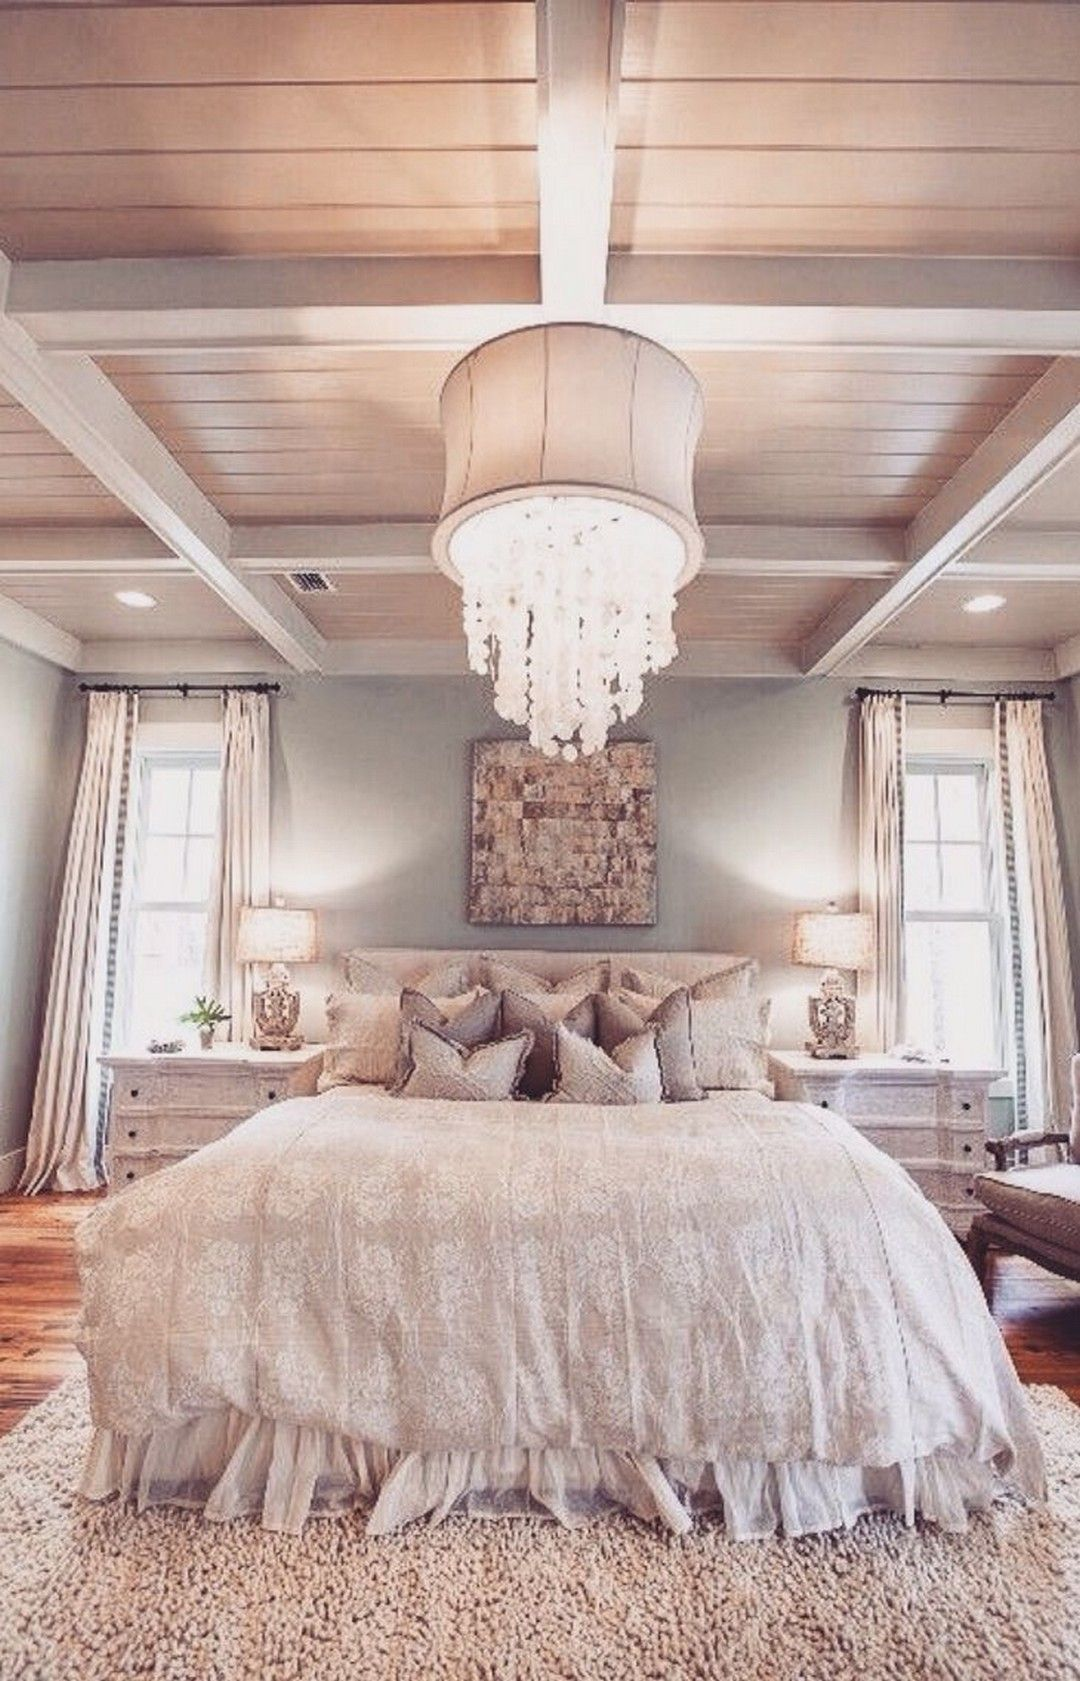 Cottage Master Bedroom With Simon Blake Interiors Sebel Table Lamp Shades Of Light Dripping Crystal Shade Chandelier Romantic Cozy